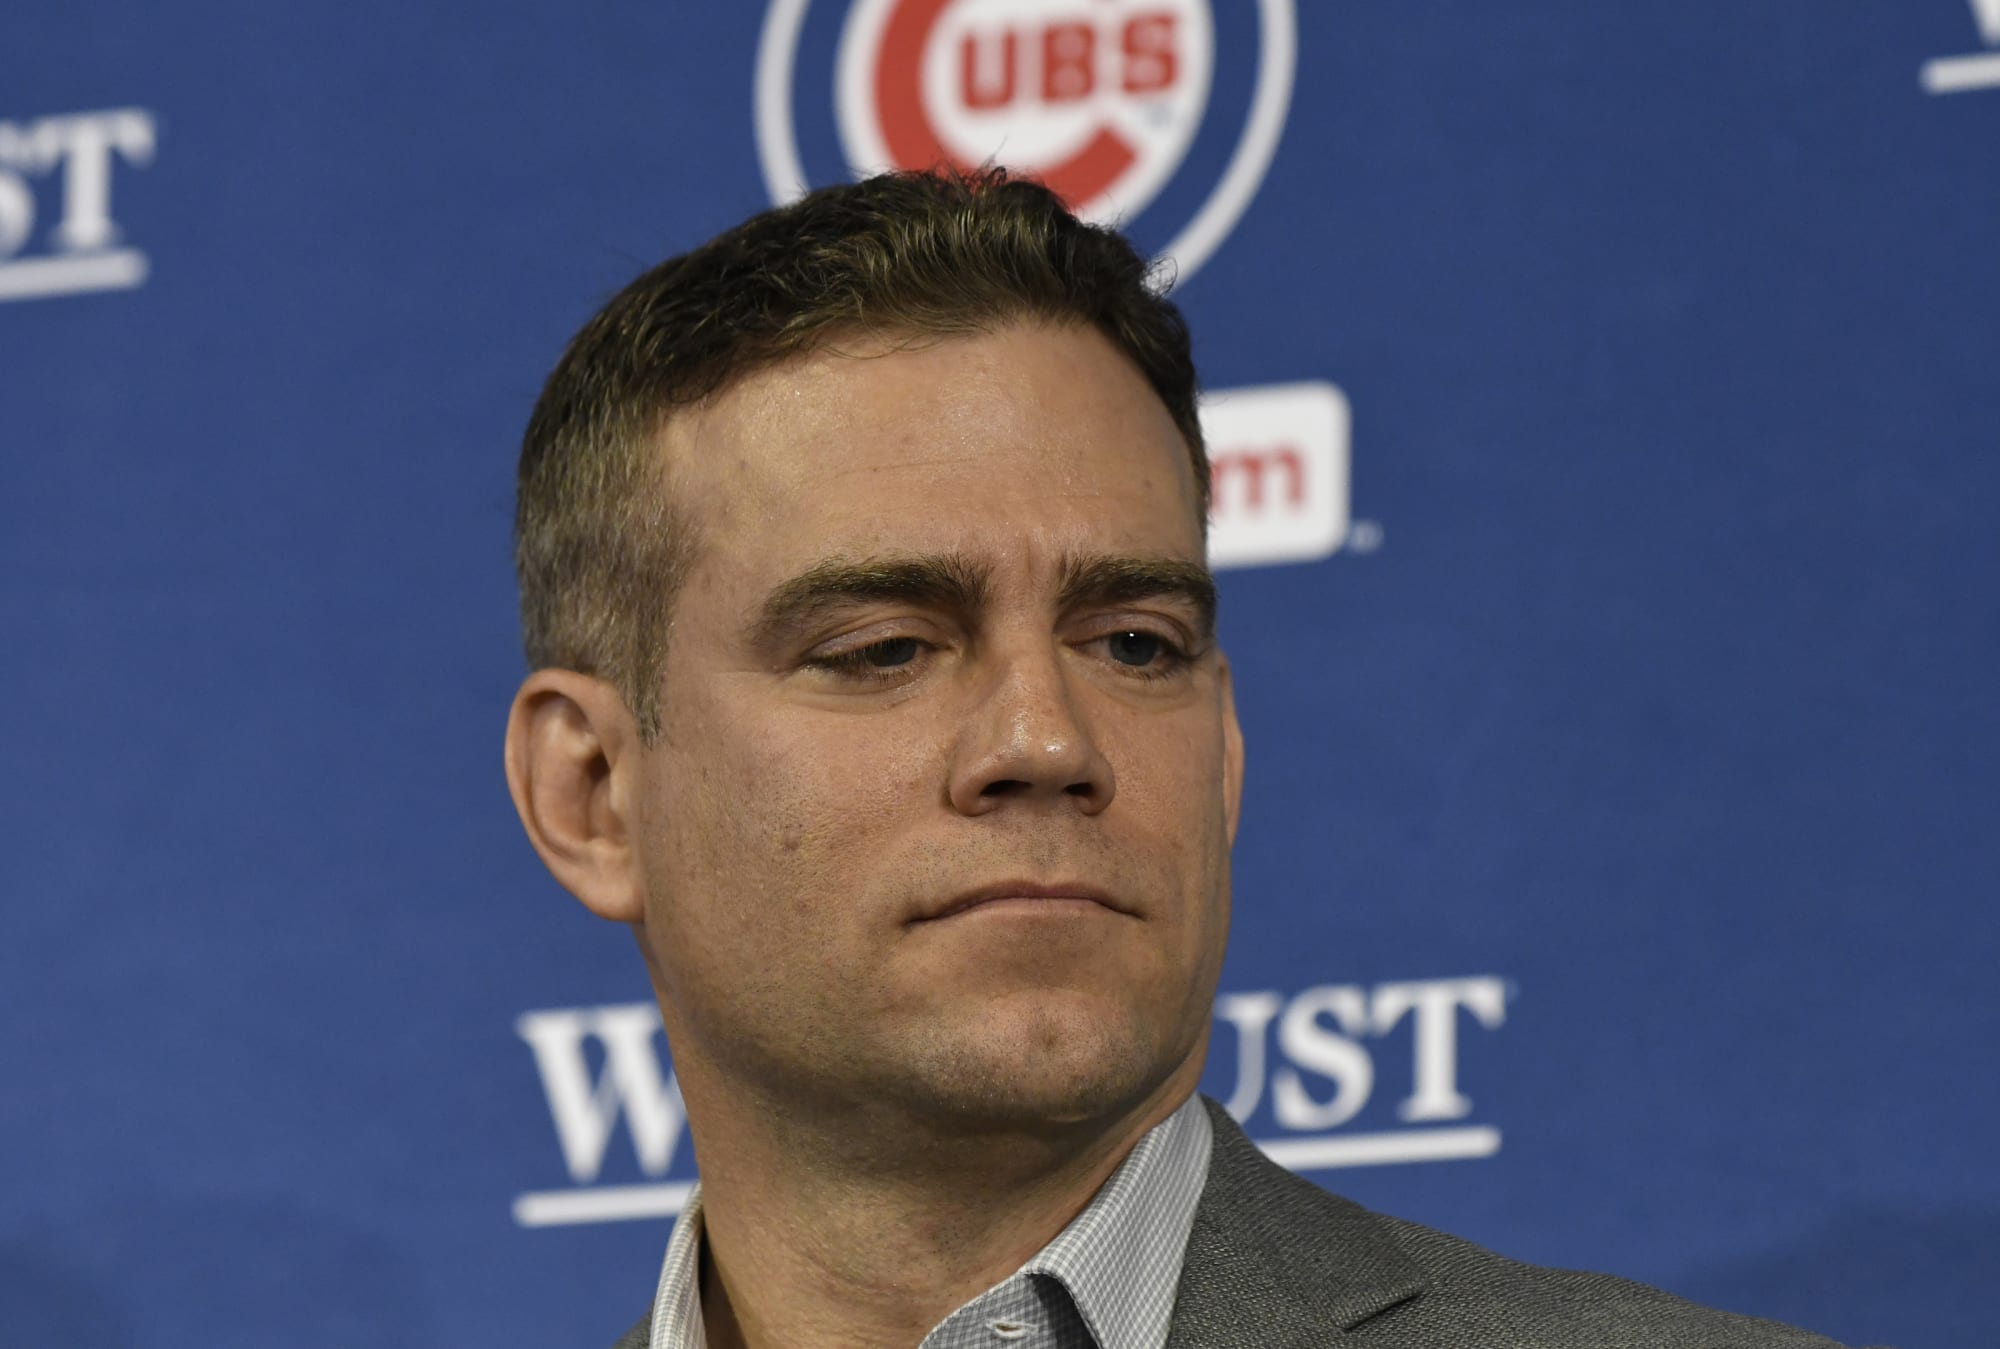 White Sox: Gauging effect of potential rule changes